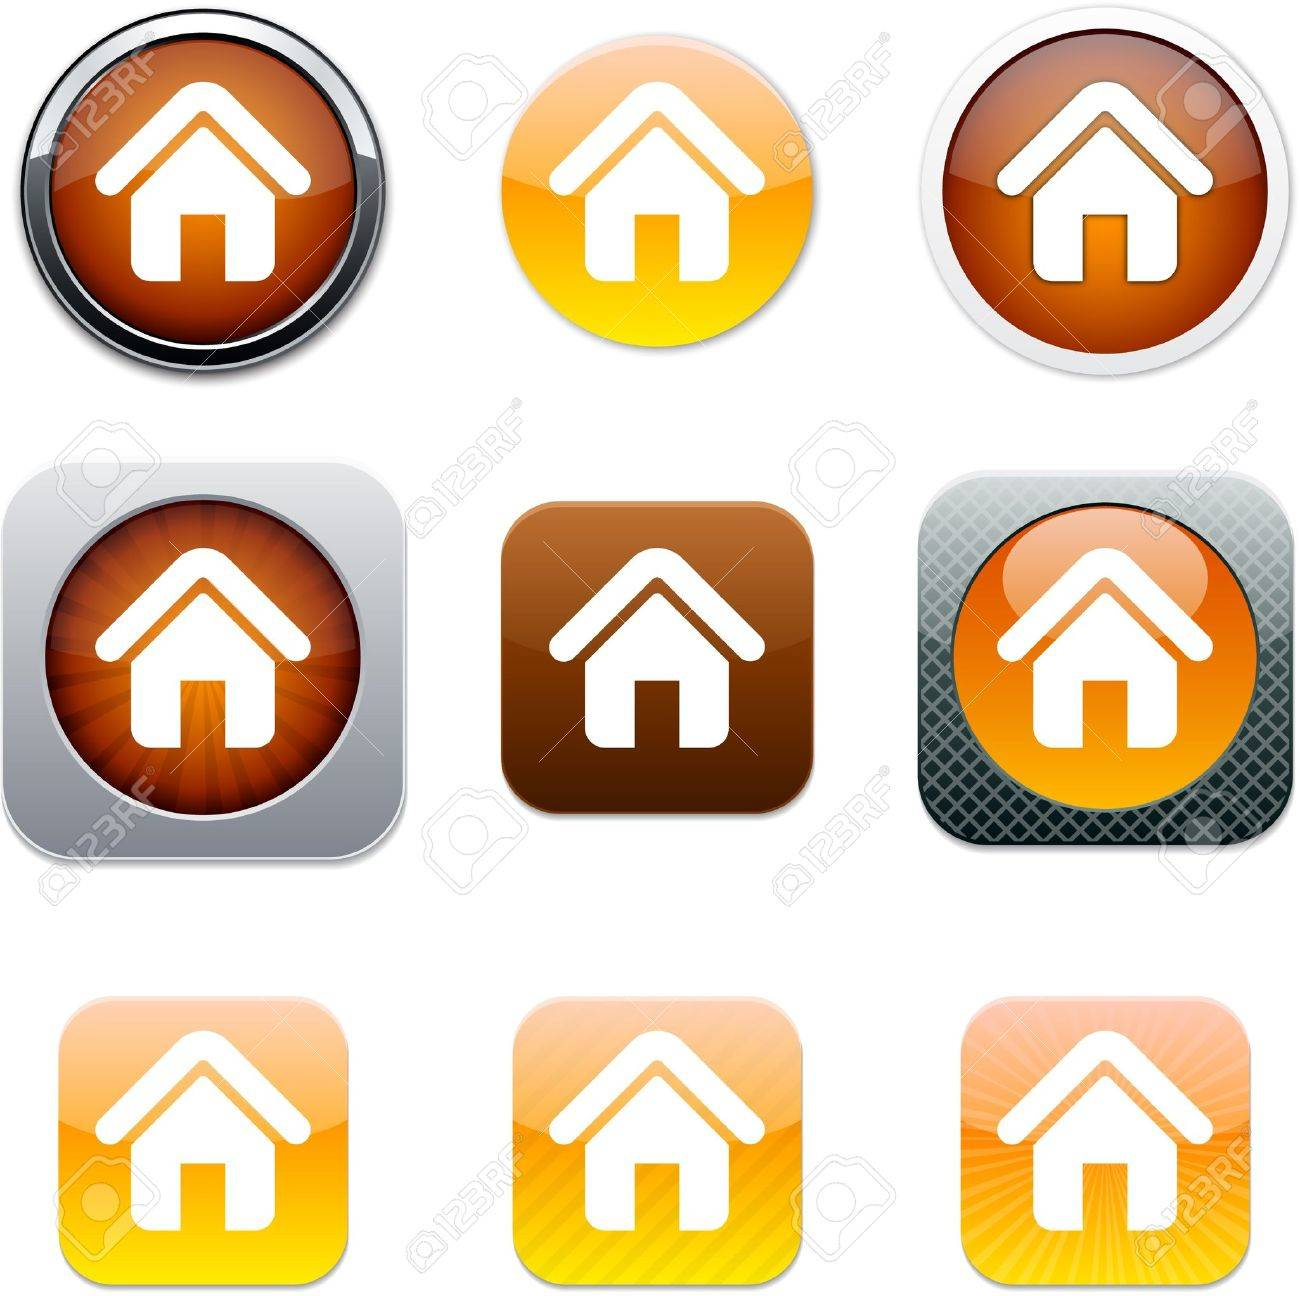 Home Set of apps icons. Vector illustration. Stock Vector - 9946212